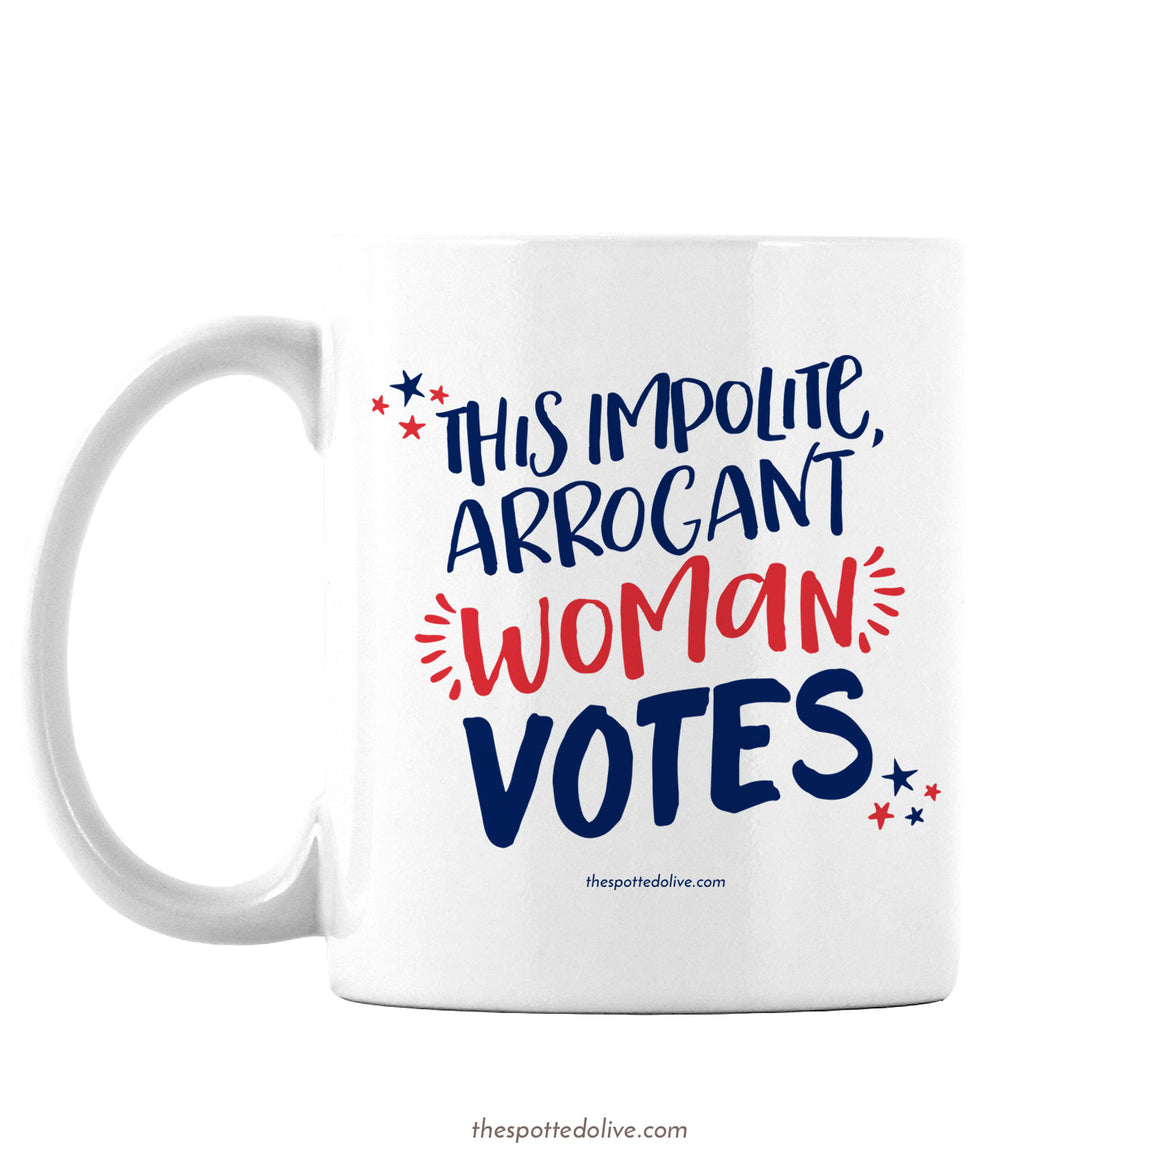 This Impolite, Arrogant Woman Votes Cofee Mug by The Spotted Olive - Left